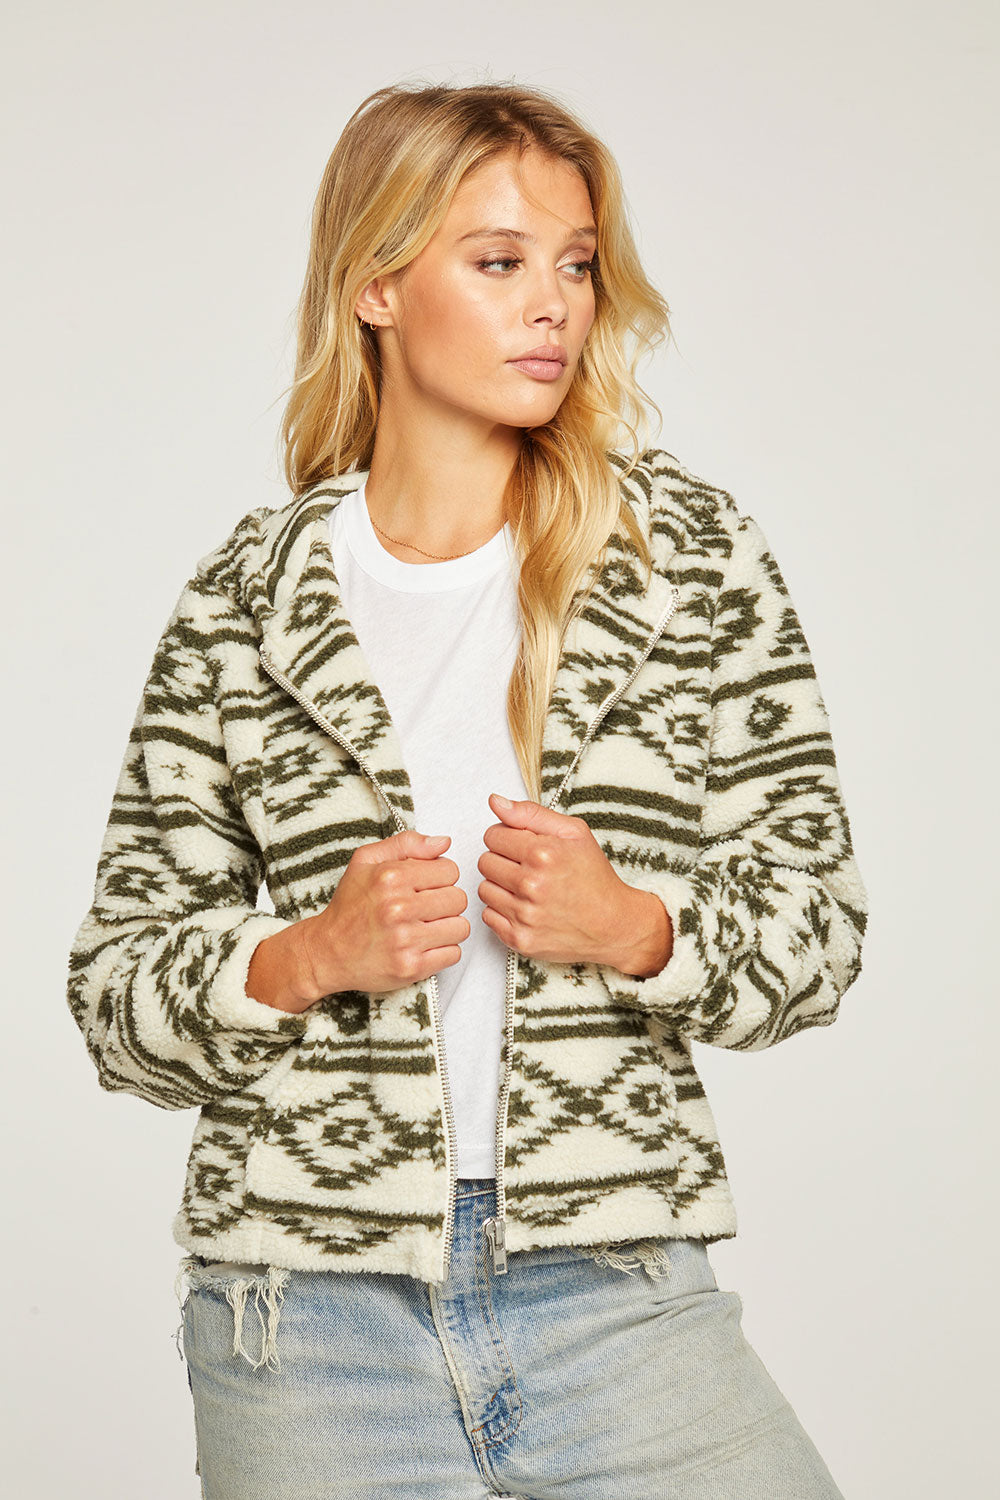 Wanderlust Polar Fleece Blouson Sleeve Zip Up Hoodie Jacket WOMENS - chaserbrand